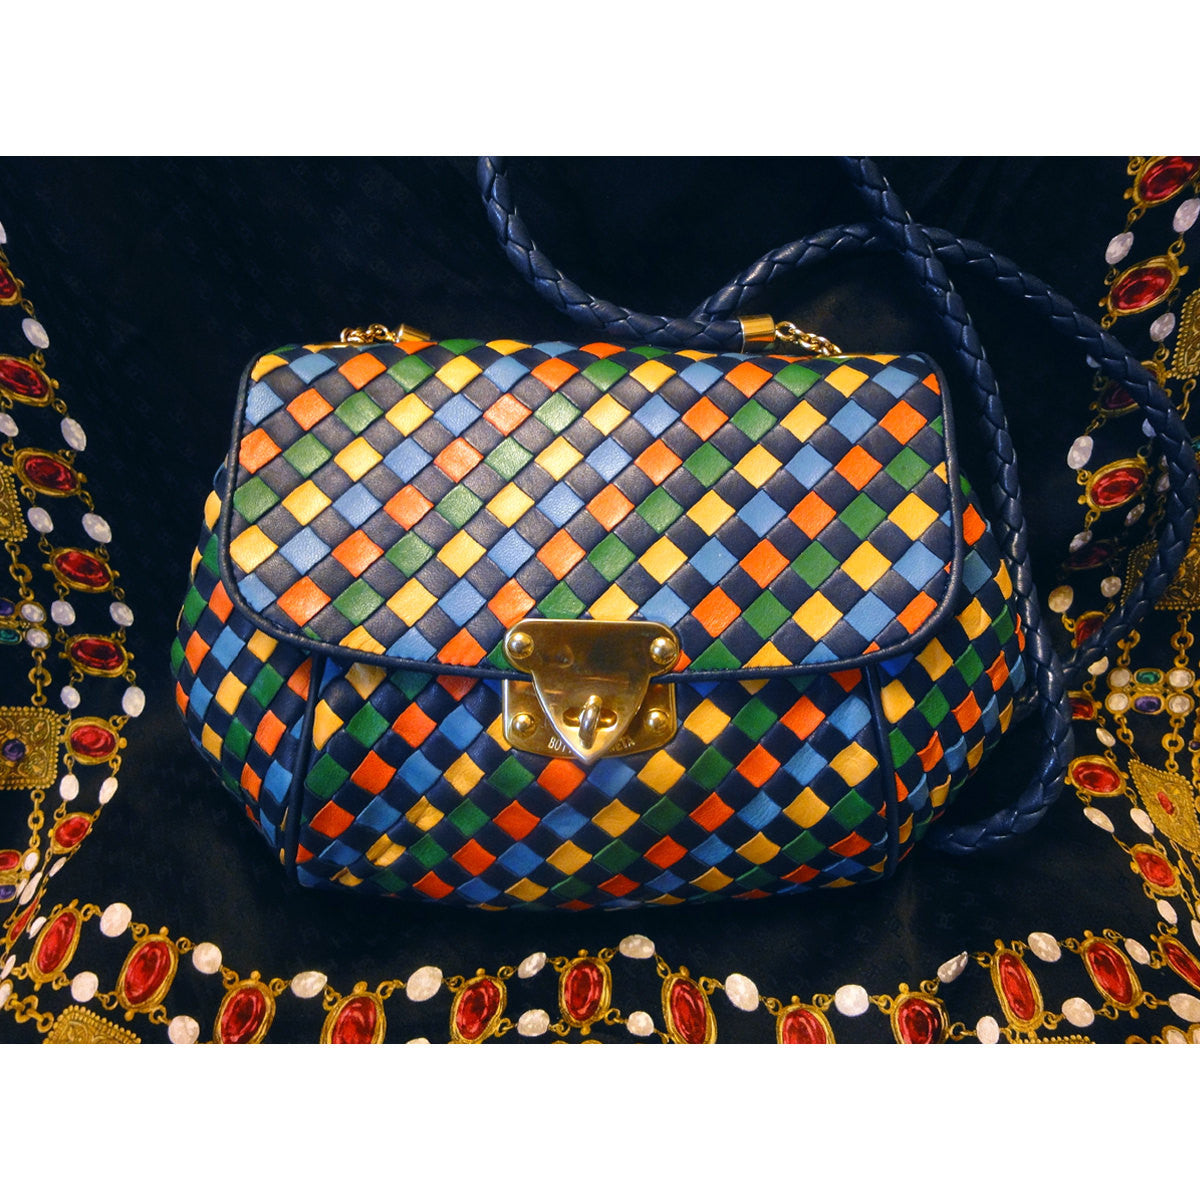 SOLD OUT: Vintage Bottega Veneta intrecciato woven leather shoulder purse in red, blue, green, yellow, and navy. Rare masterpiece. Cam be a clutch